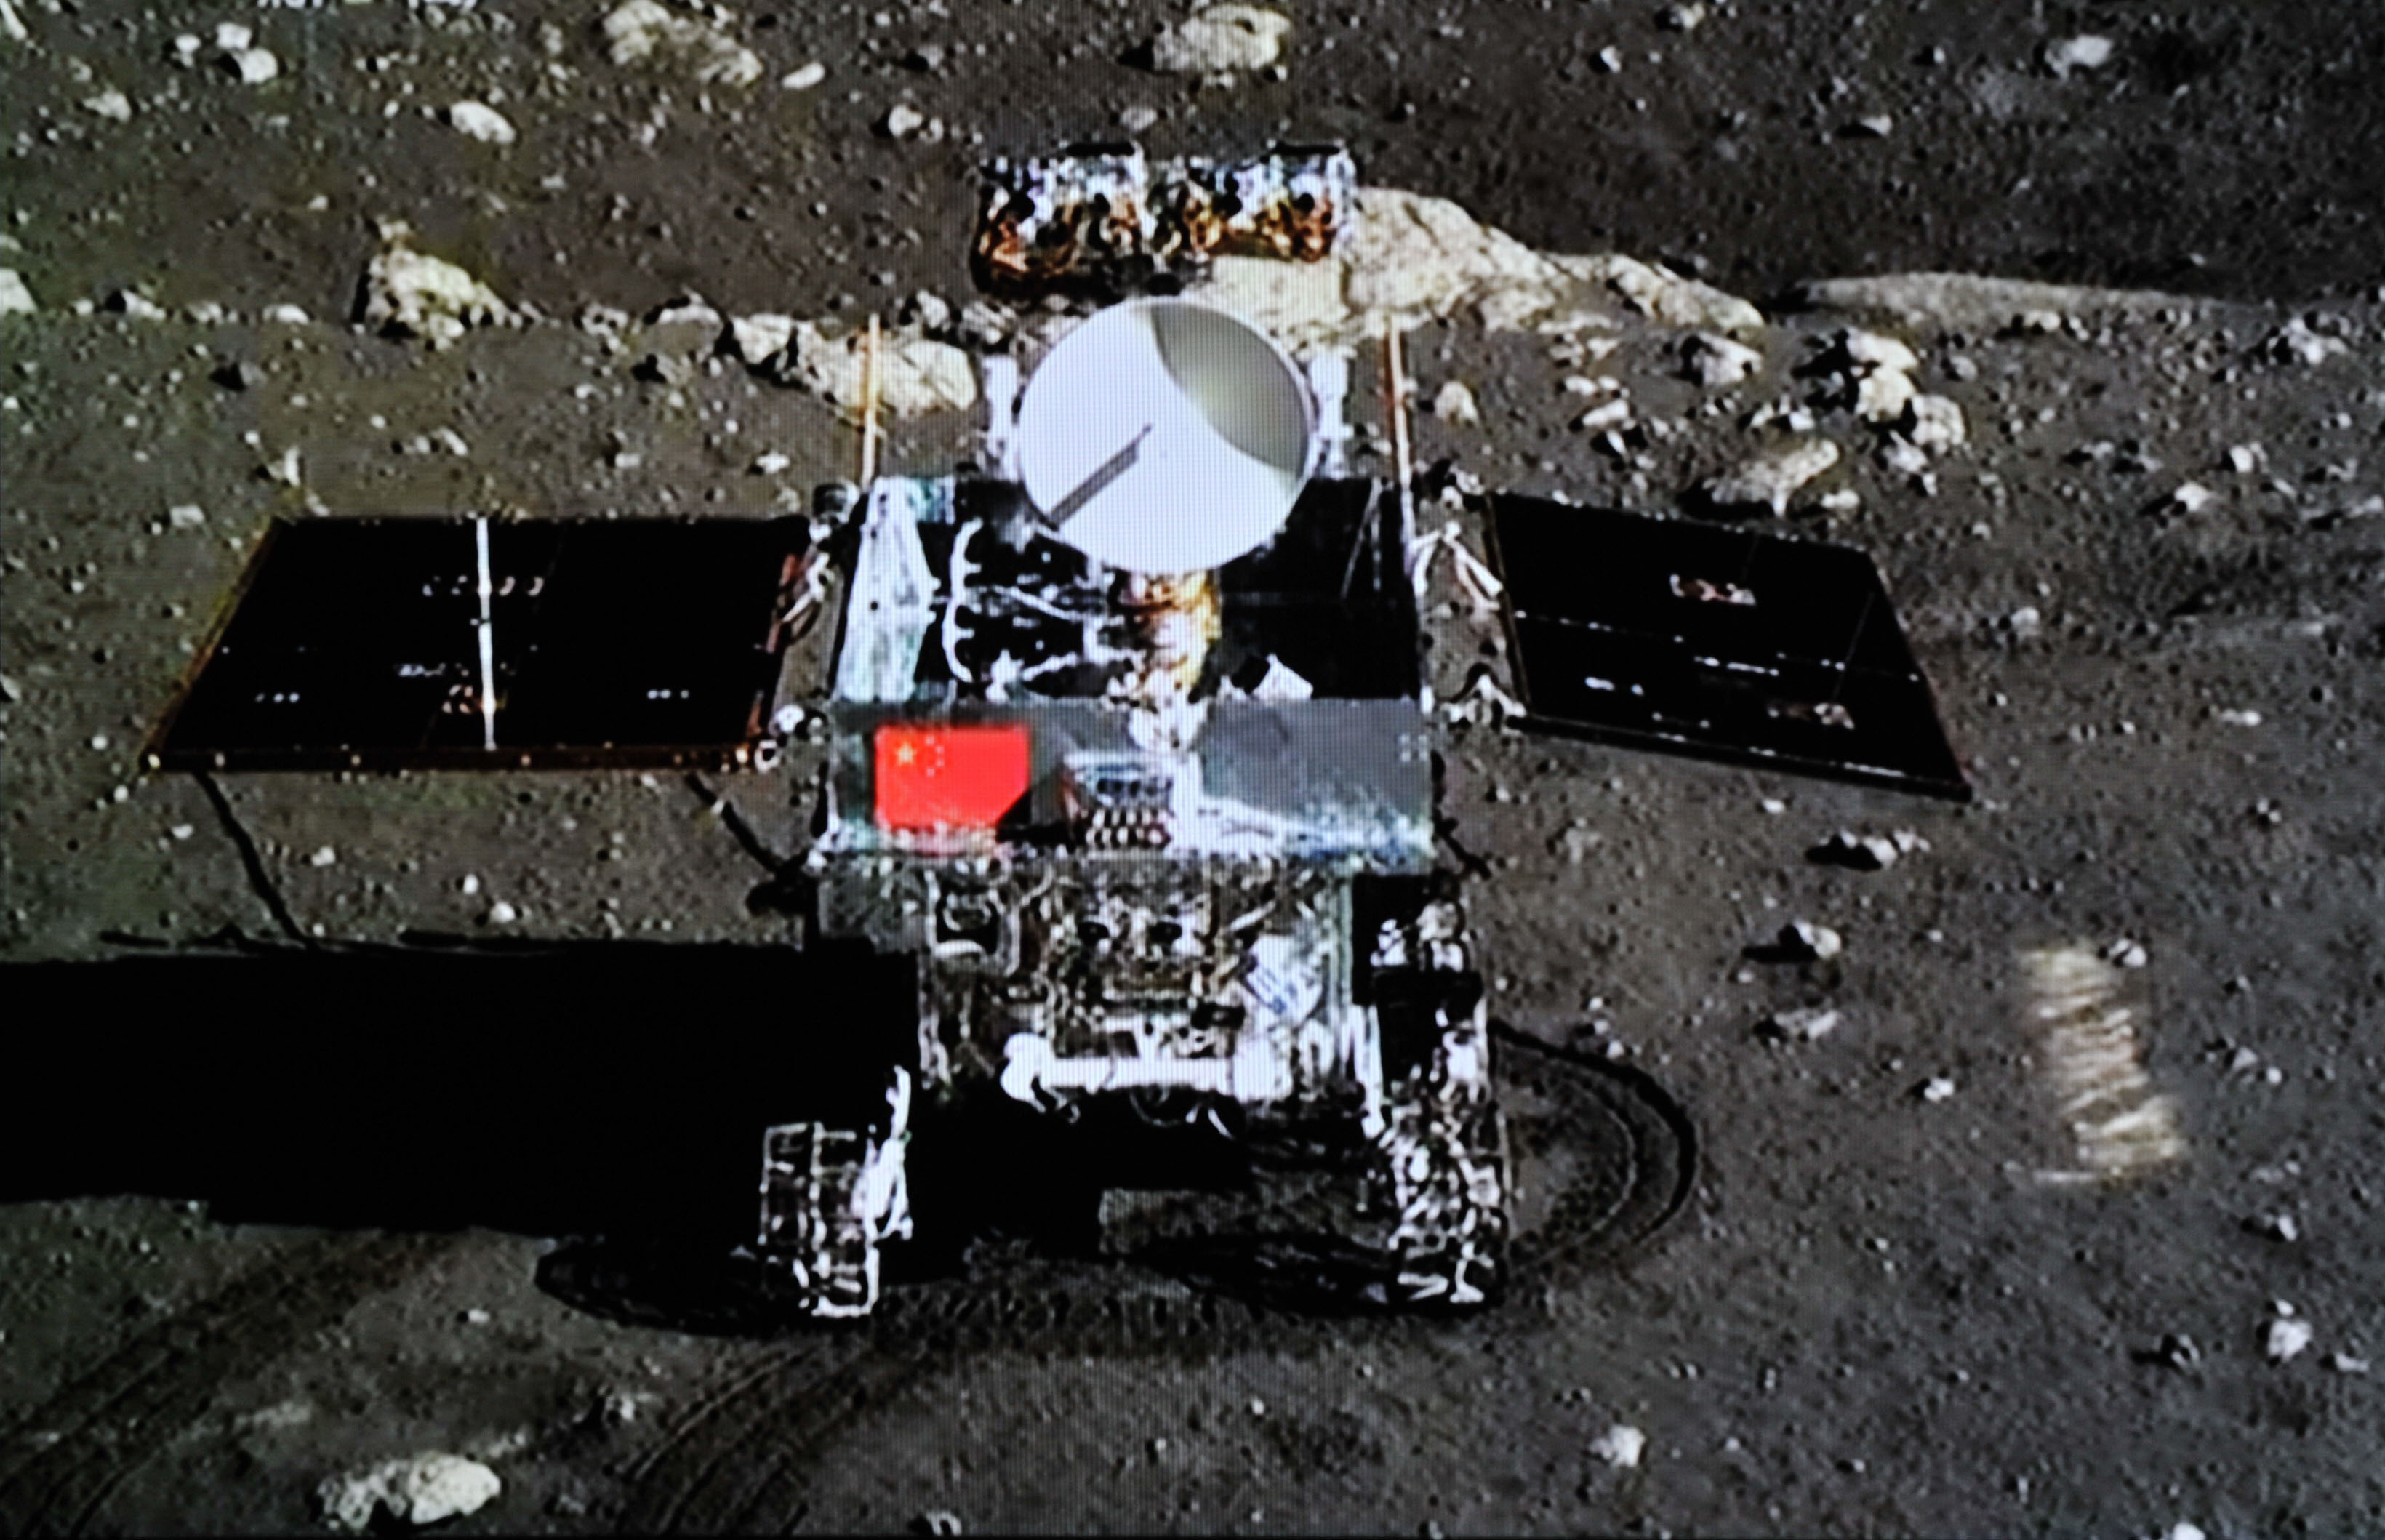 Chinas first moon rover The Jade Rabbit on the surface of the moon during the ChangE-3 lunar exploration mission on Dec. 15, 2013.